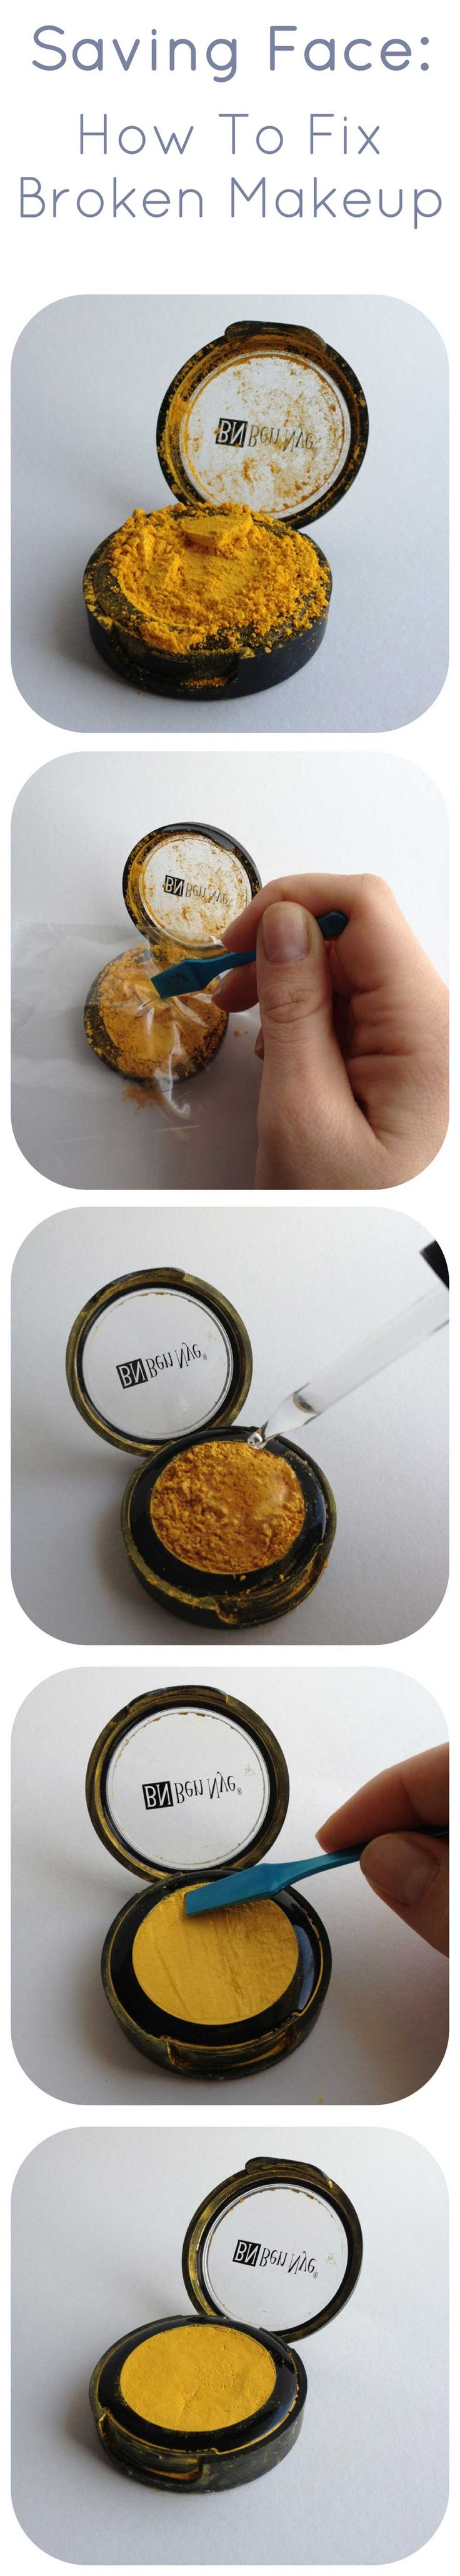 How to fix broken powder makeup with alcohol in four simple steps - Best 25 Fixing Broken Powder Ideas On Pinterest Fix Broken Compact Broken Eyeshadow And Fix Broken Makeup